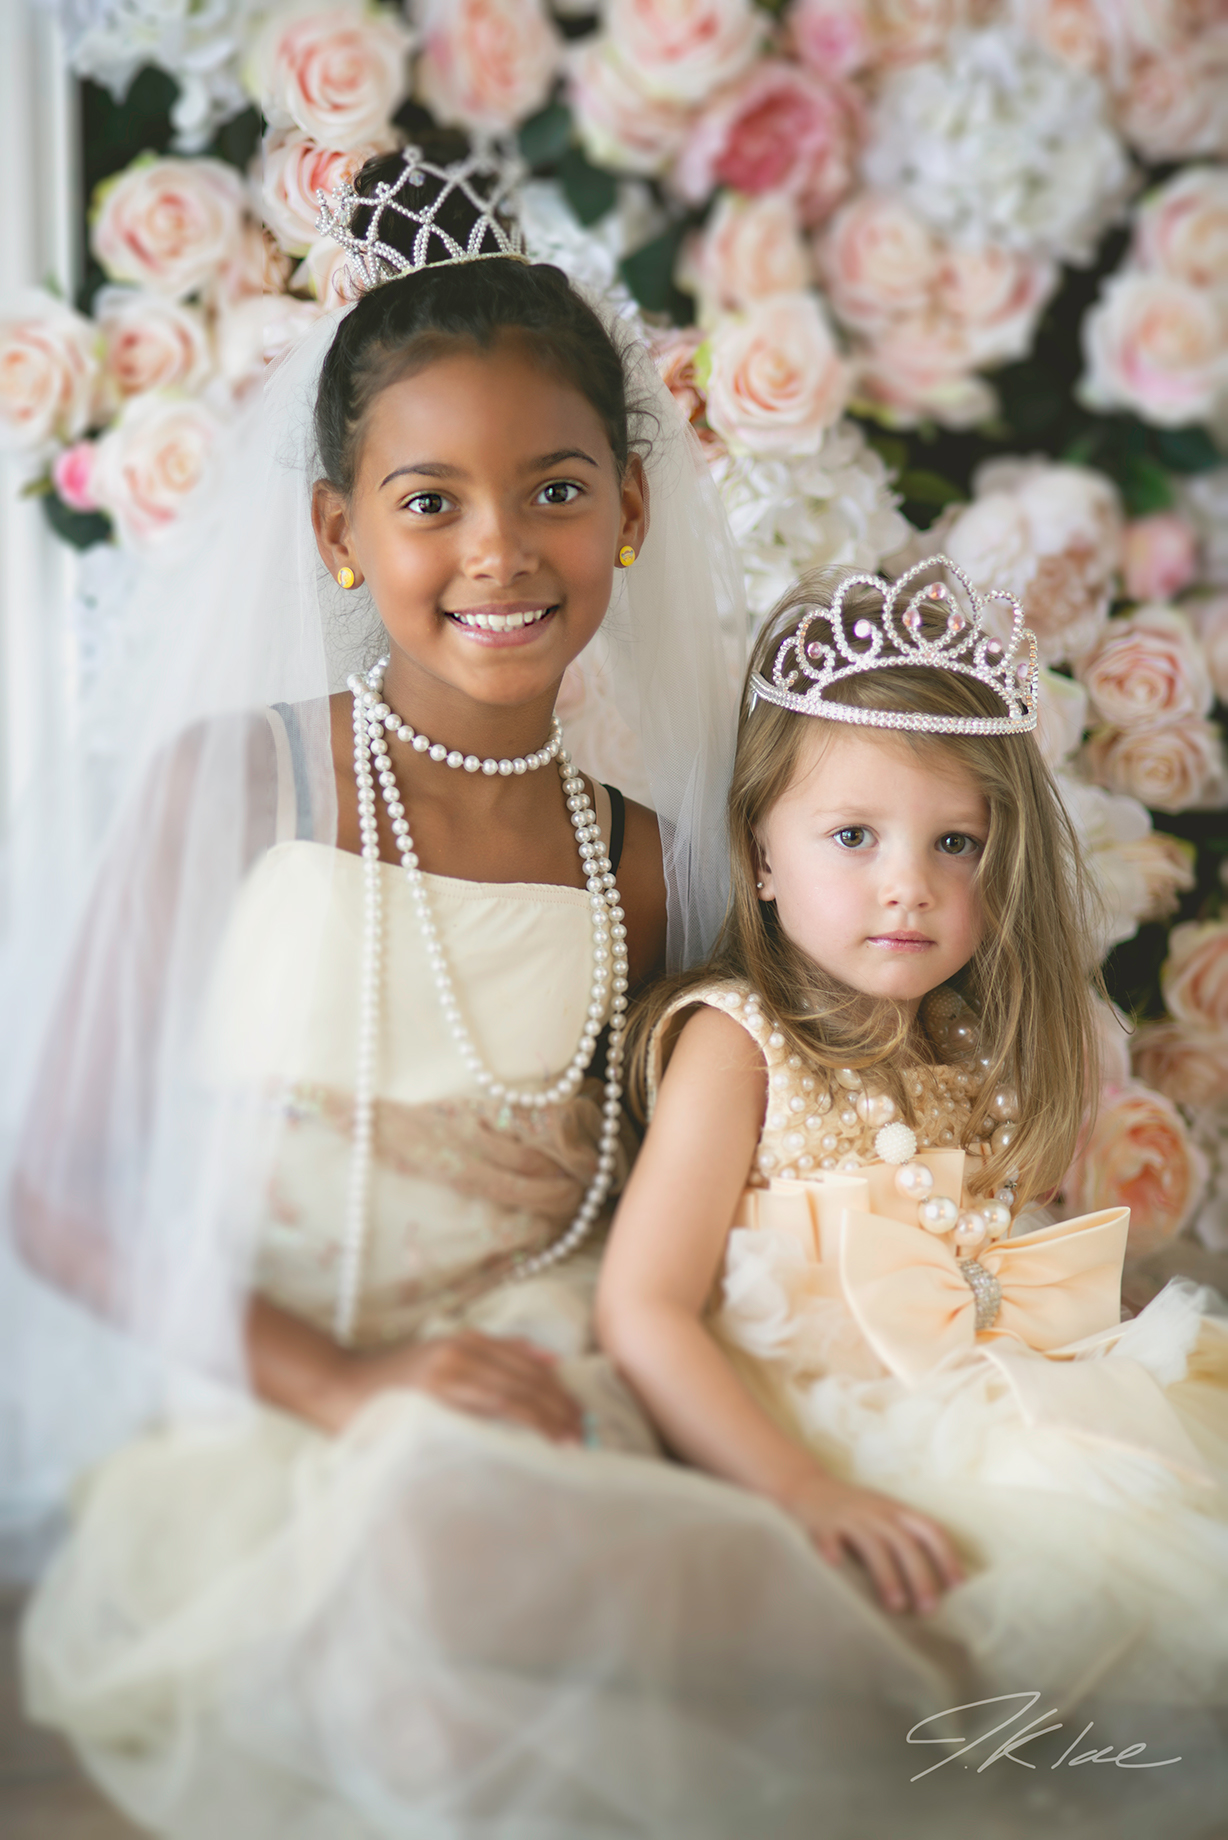 Princess Images of two girls with tiaras, veils, and beautiful dresses in Frisco Texas